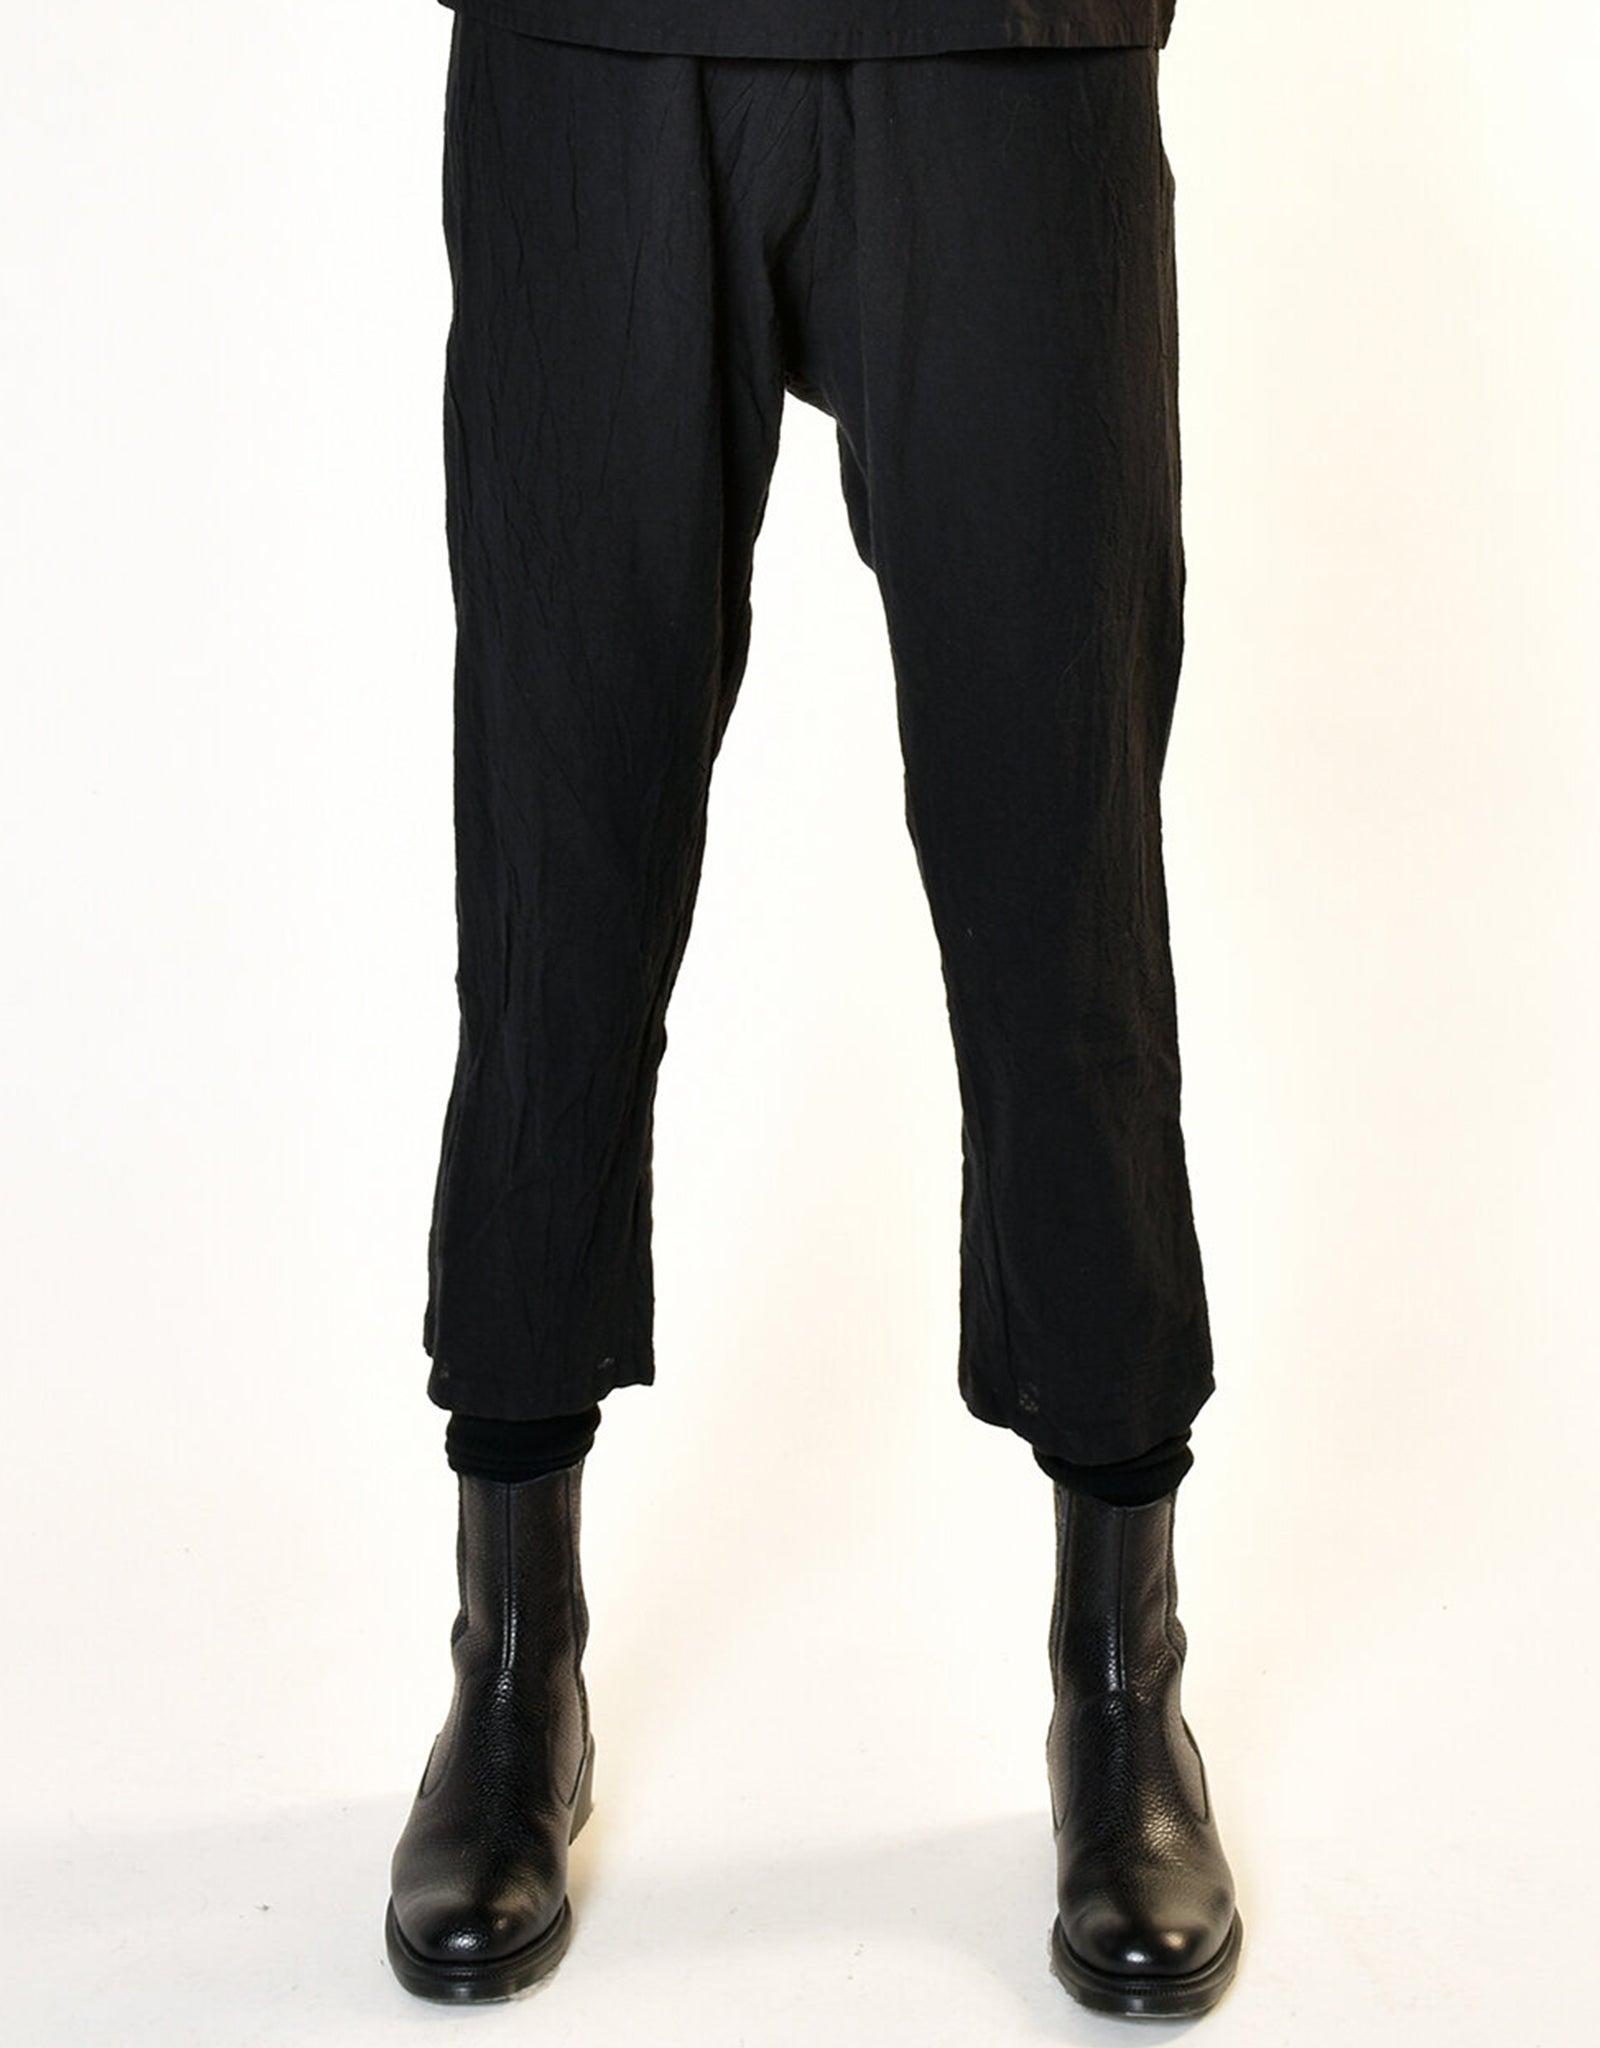 Model wears UZI NYC Coarse Cotton Drop Crotch Pant in Black. Available at FAWN Toronto.